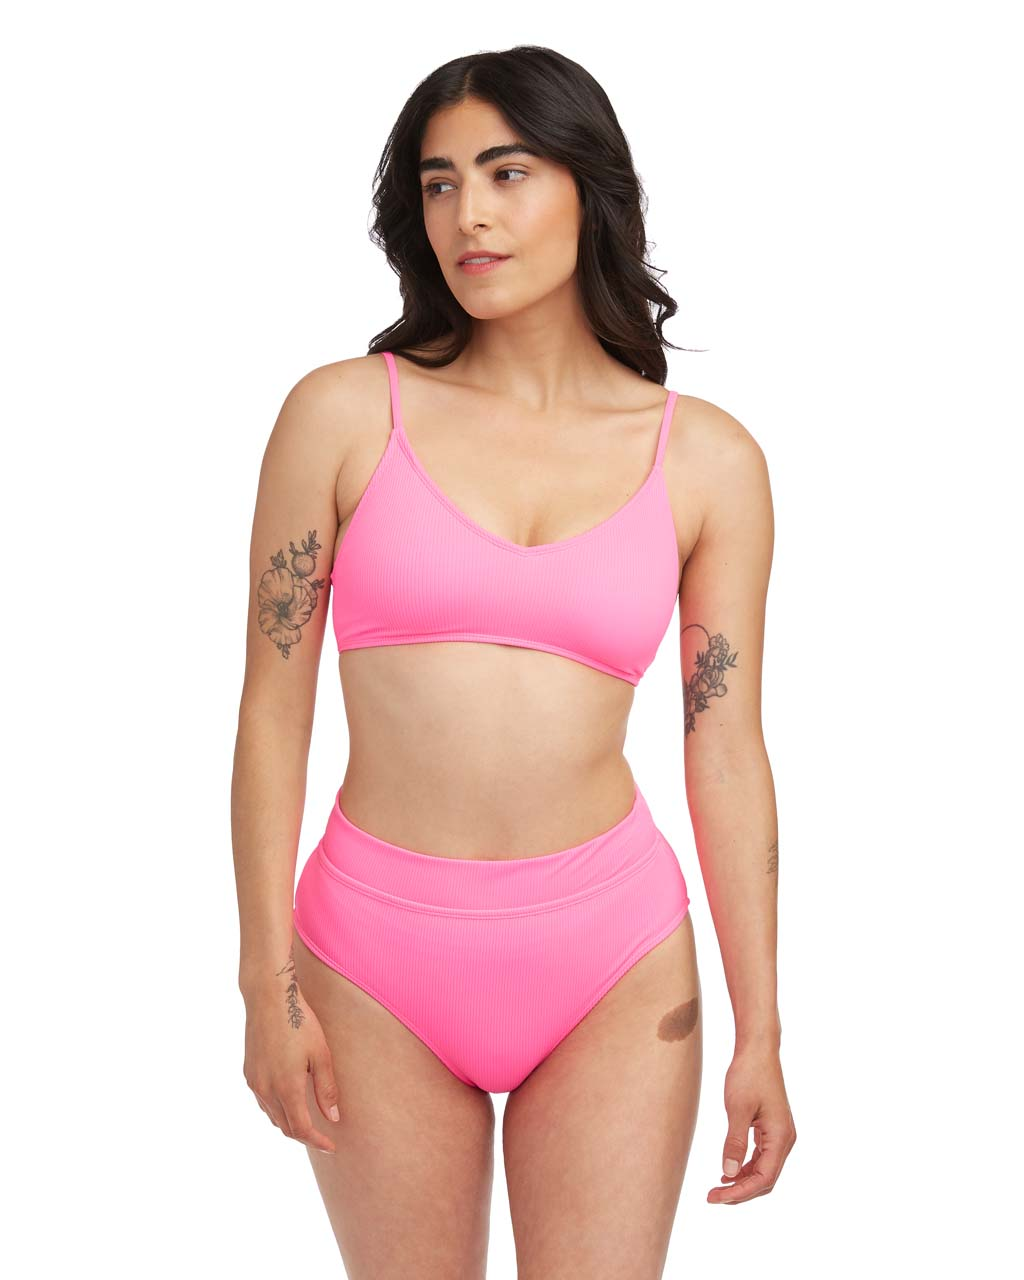 cfd53893b9 Lucie Rib Bikini Top - Strawberry by cotton on - swimsuit - ban.do